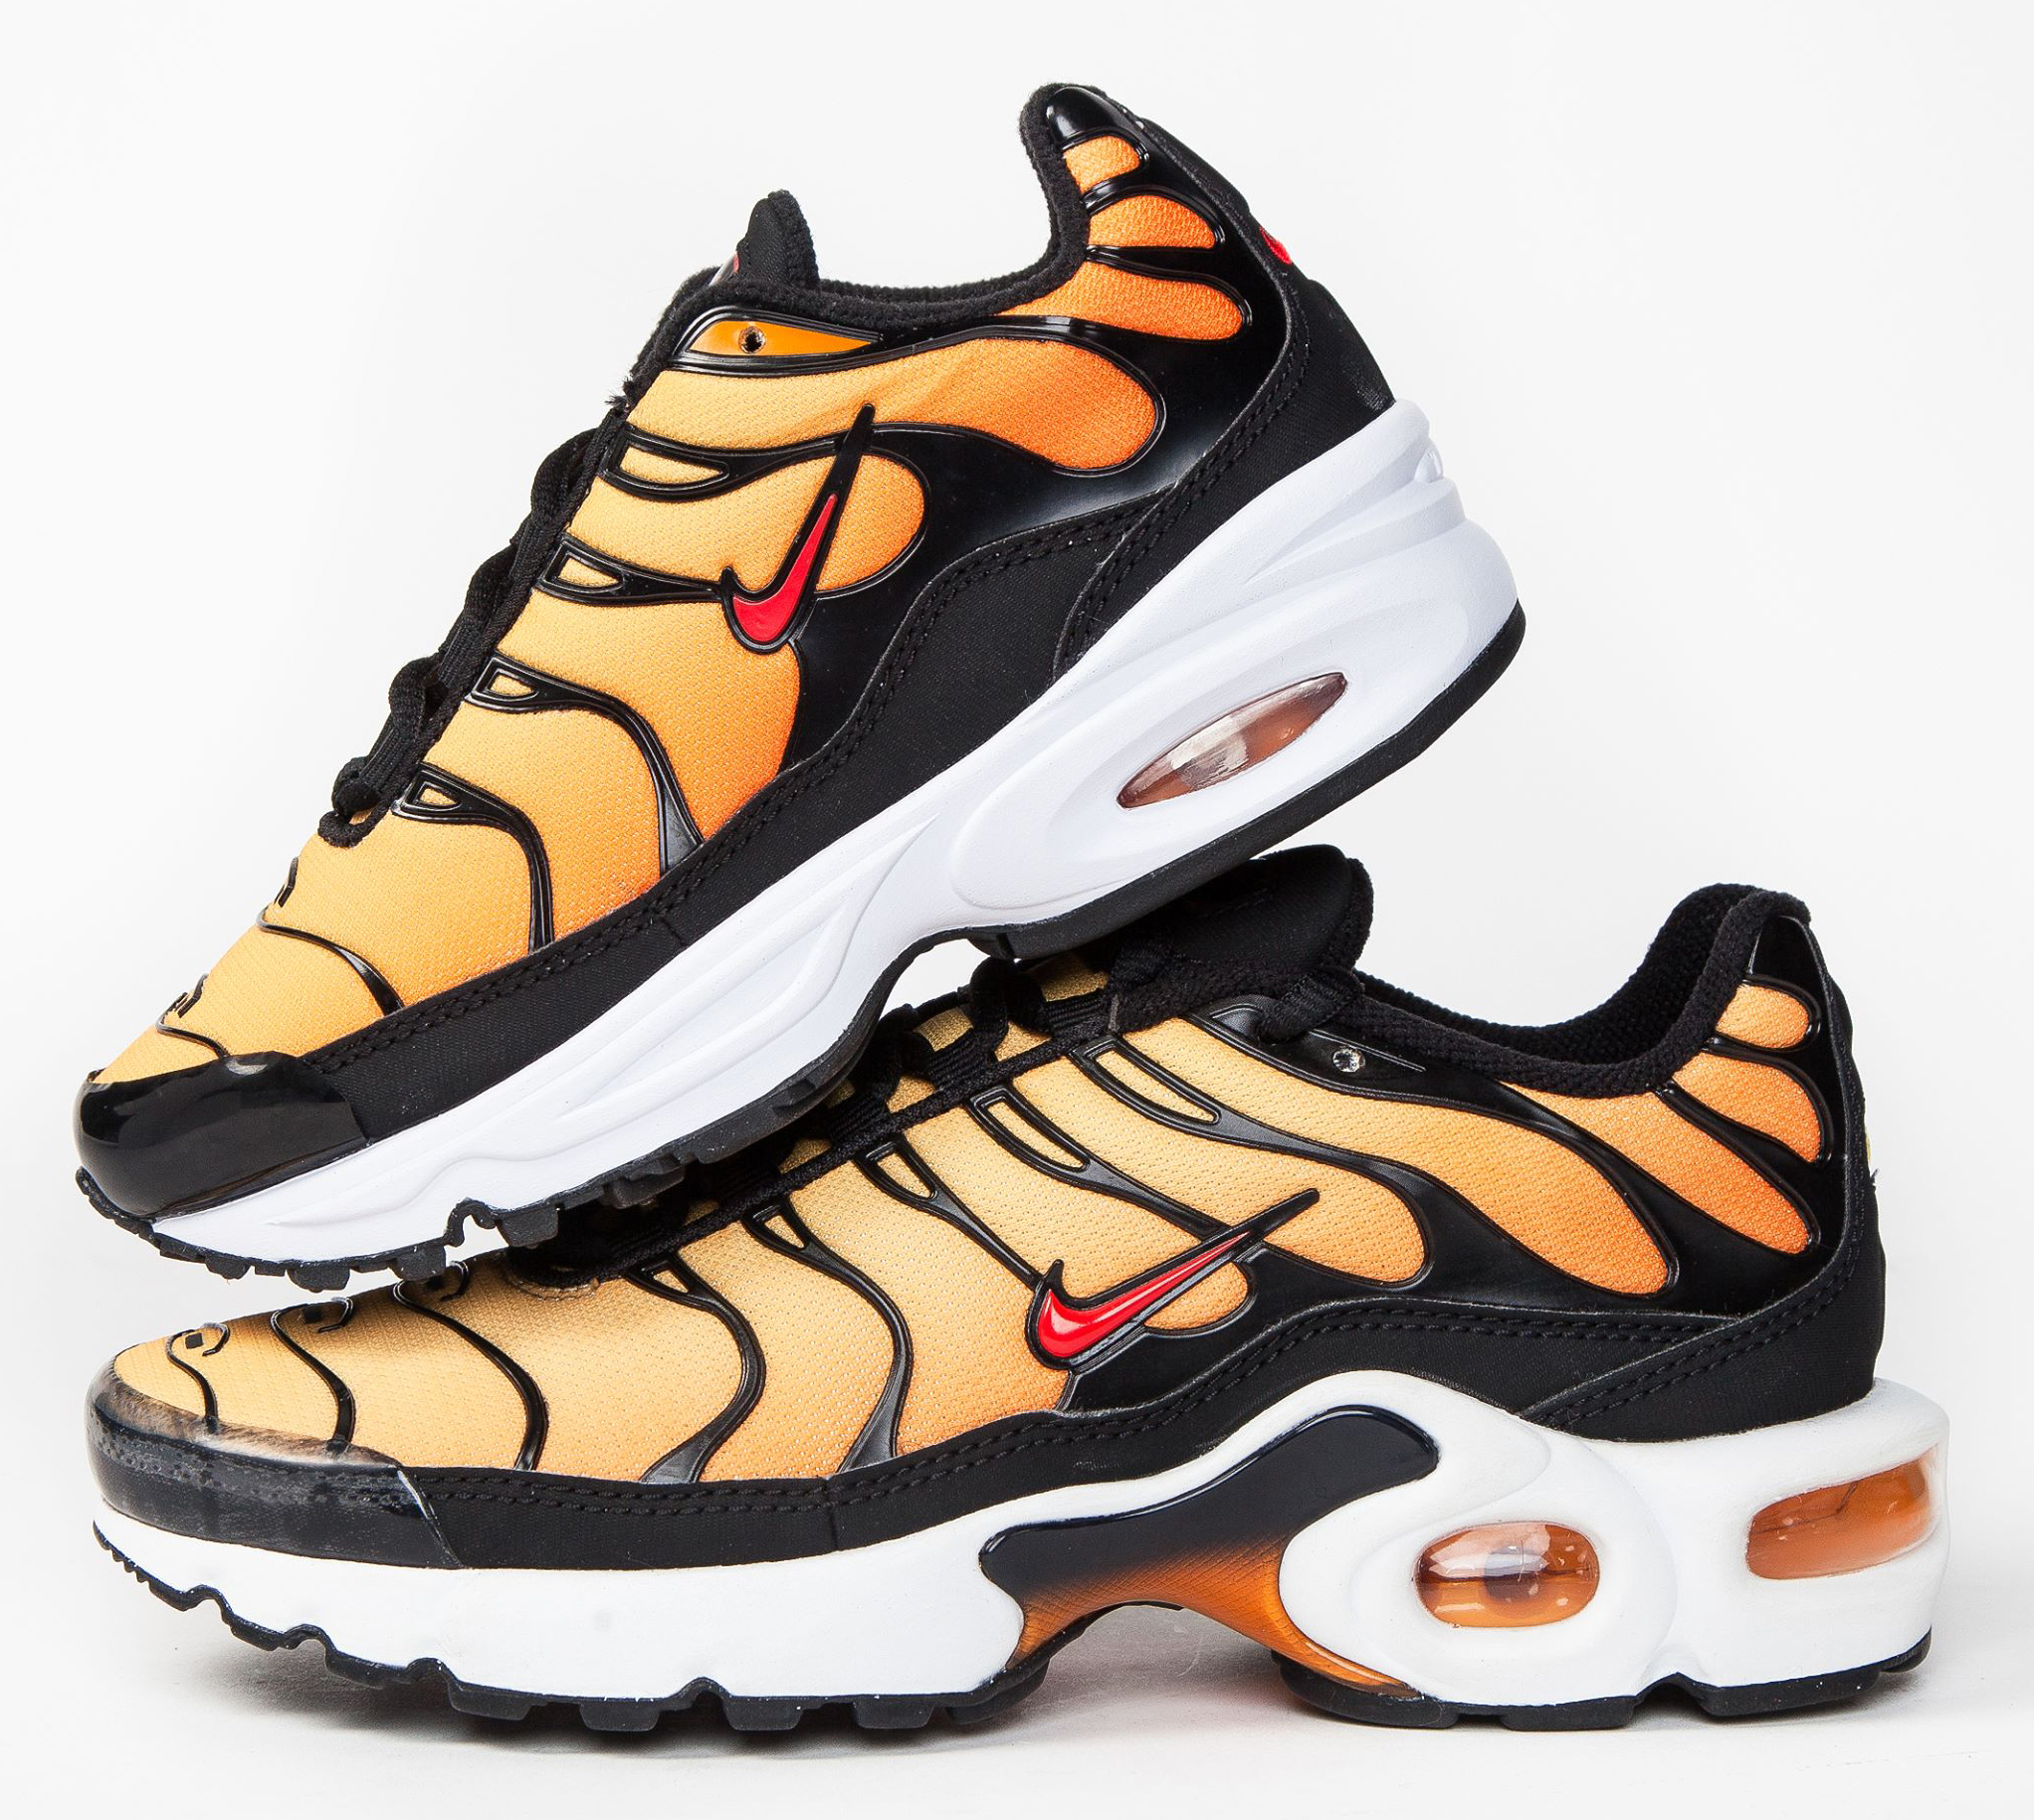 cyber-monday-2018-champs-sale-deals-nike-air-max-sneakers